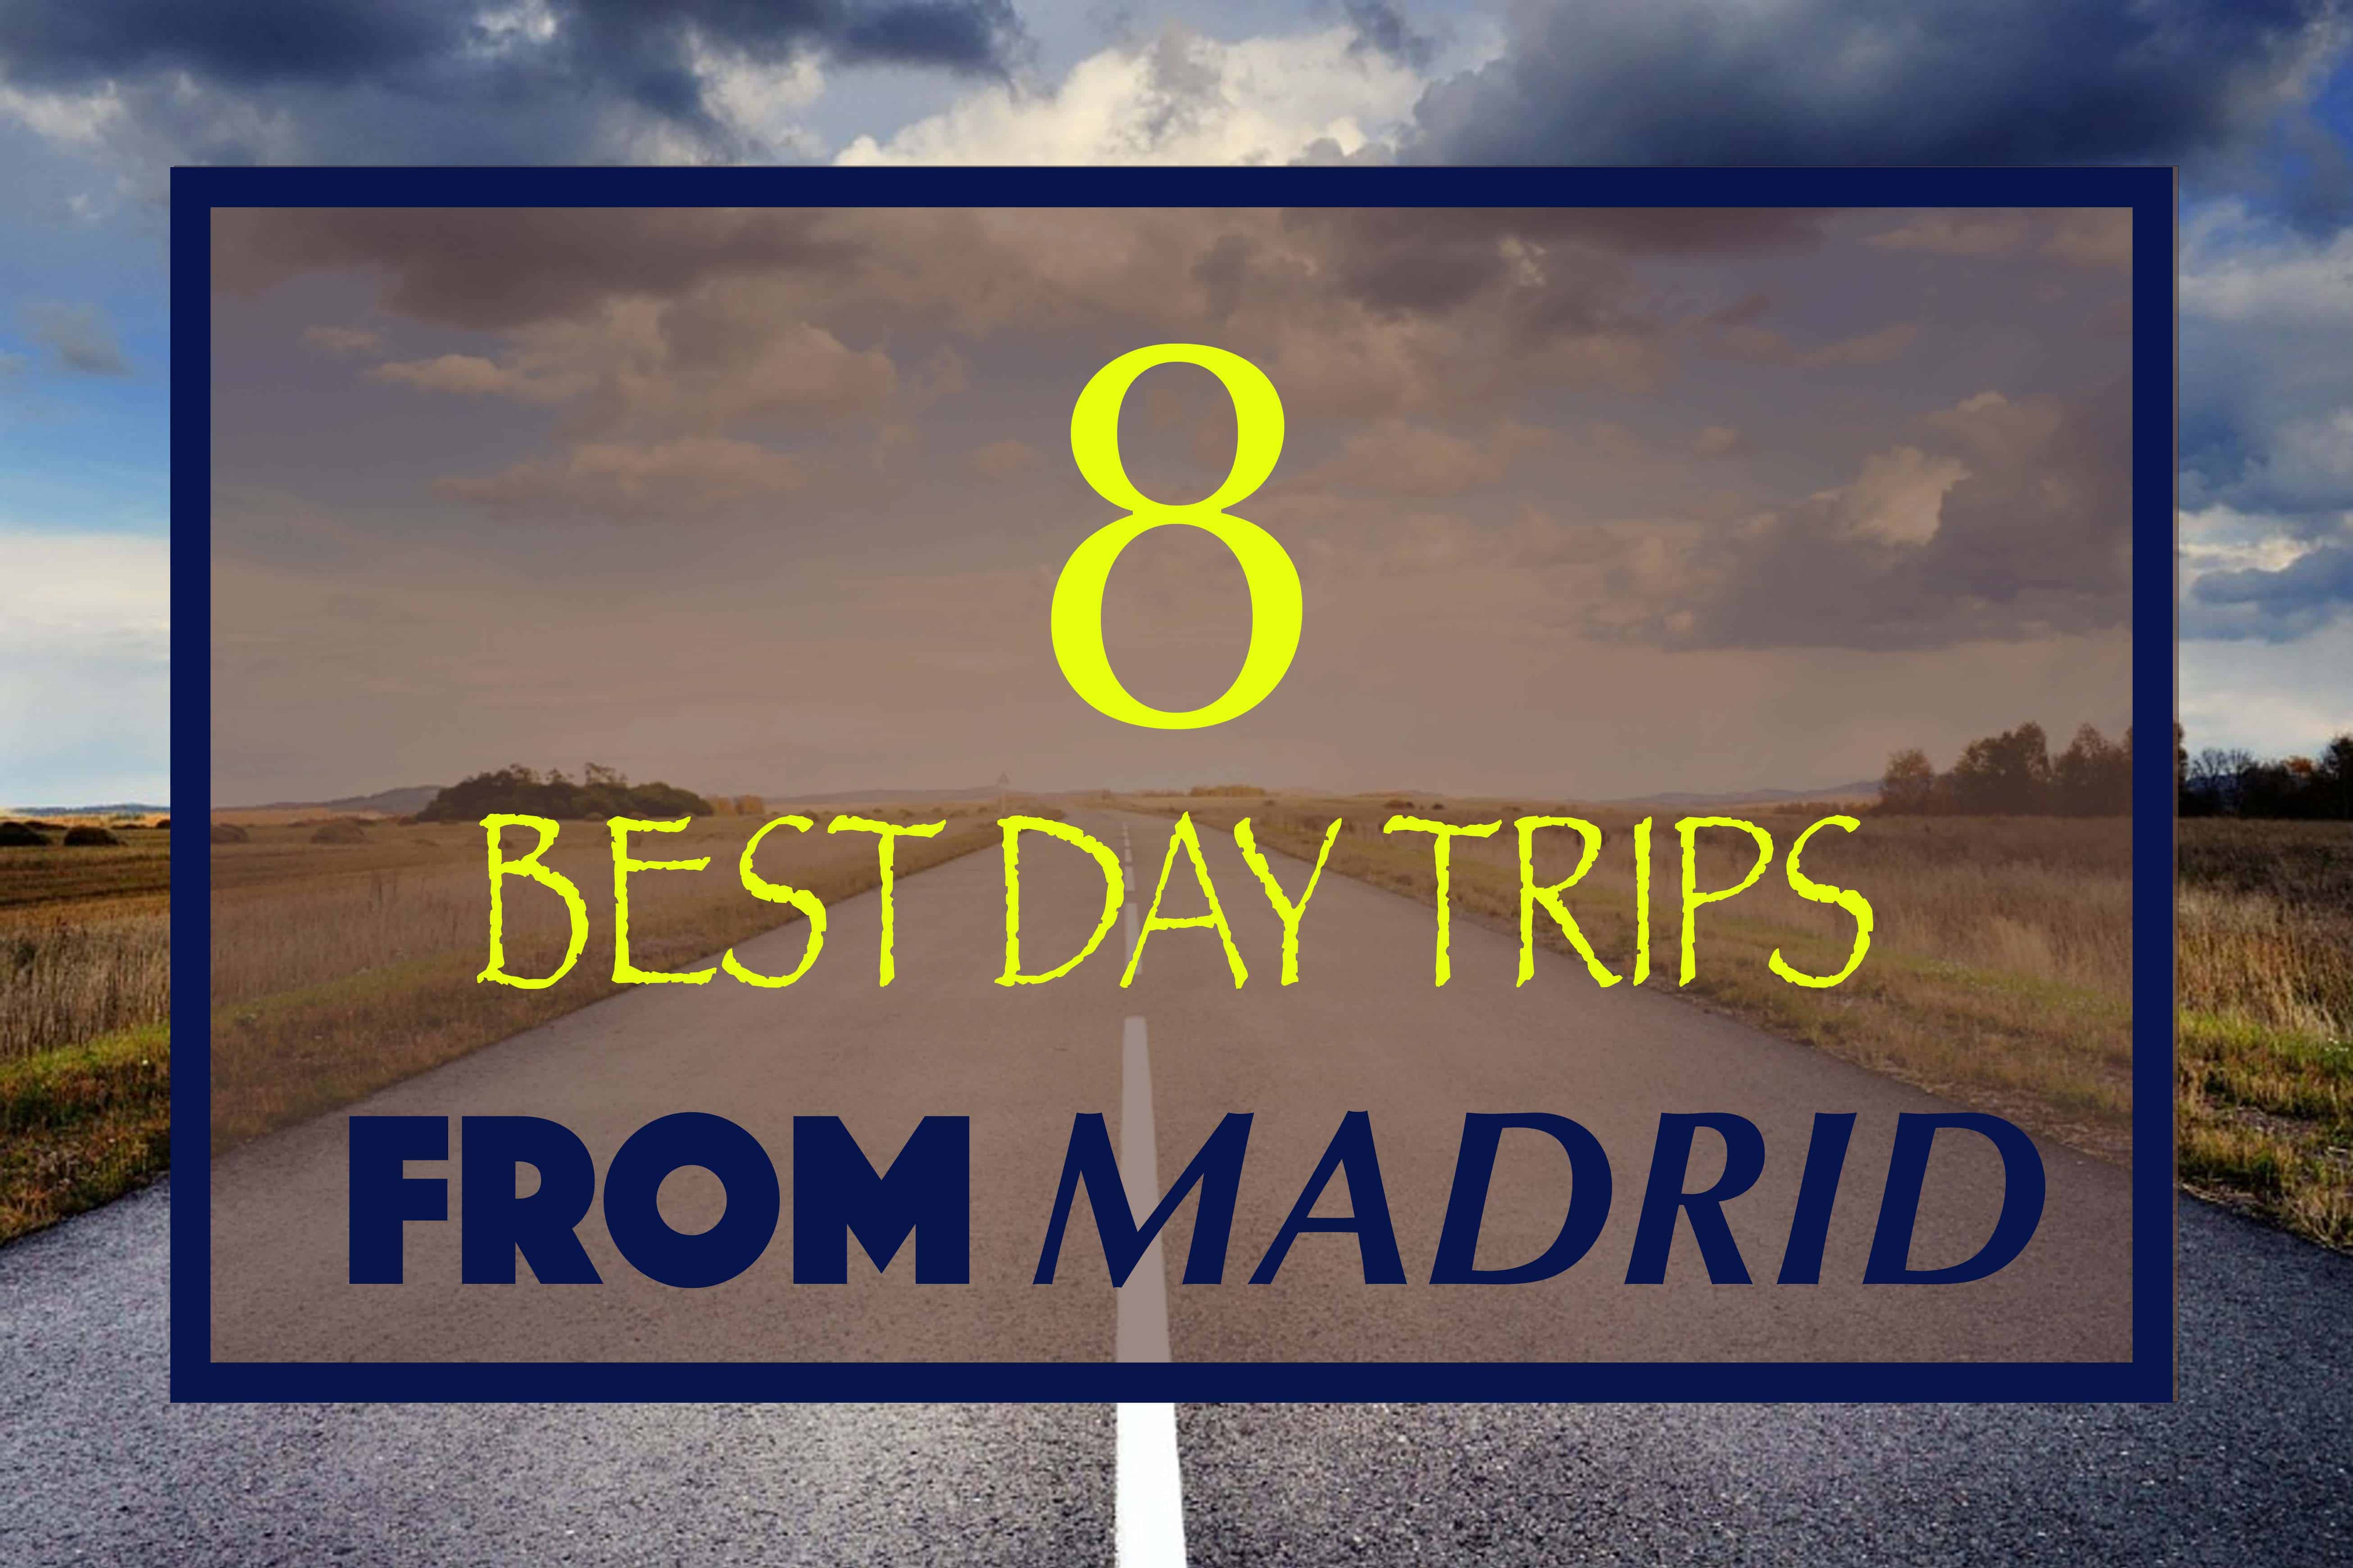 8 Best Day Trips From Madrid, Spain Travel Guide